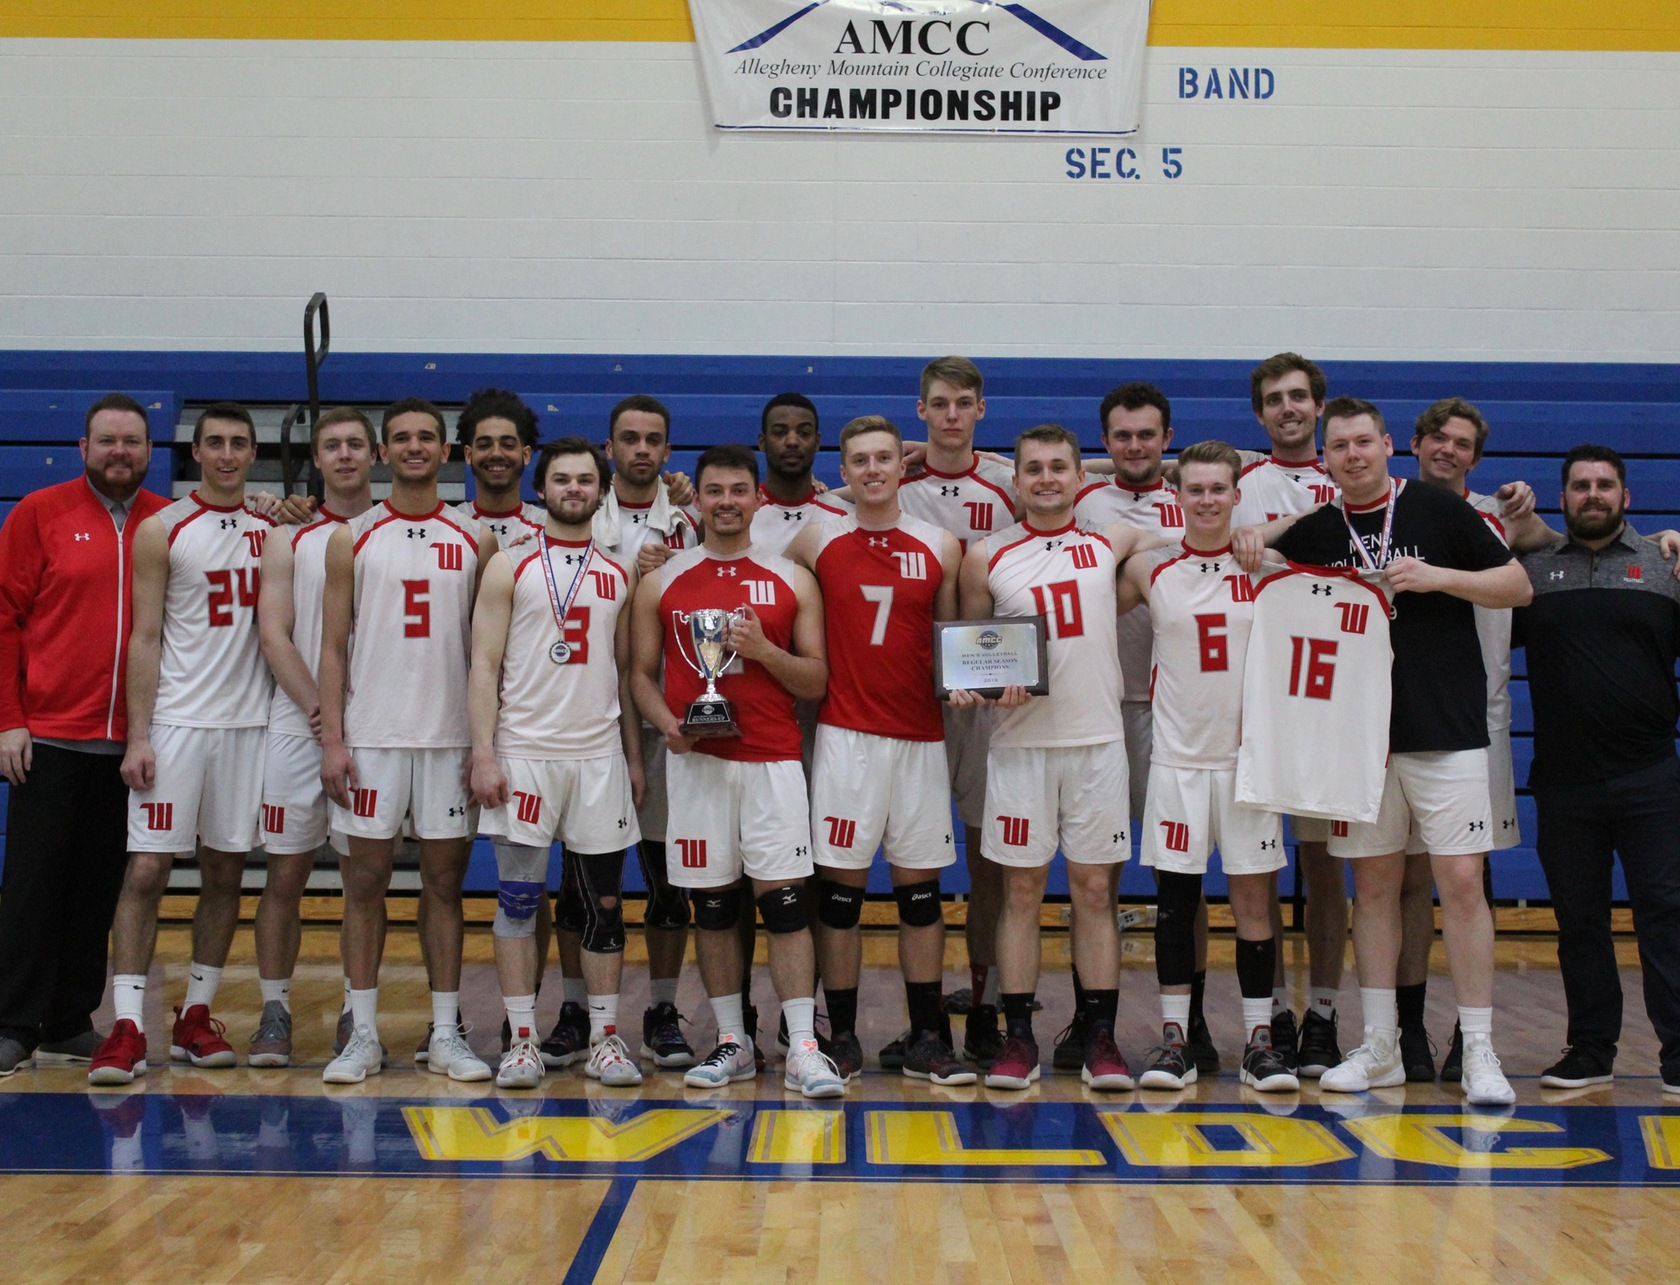 Despite dropping a 3-1 decision against Thiel in the AMCC Tournament championship match, Wittenberg was crowned the 2019 AMCC regular season champions with an 11-3 record on the year in league play